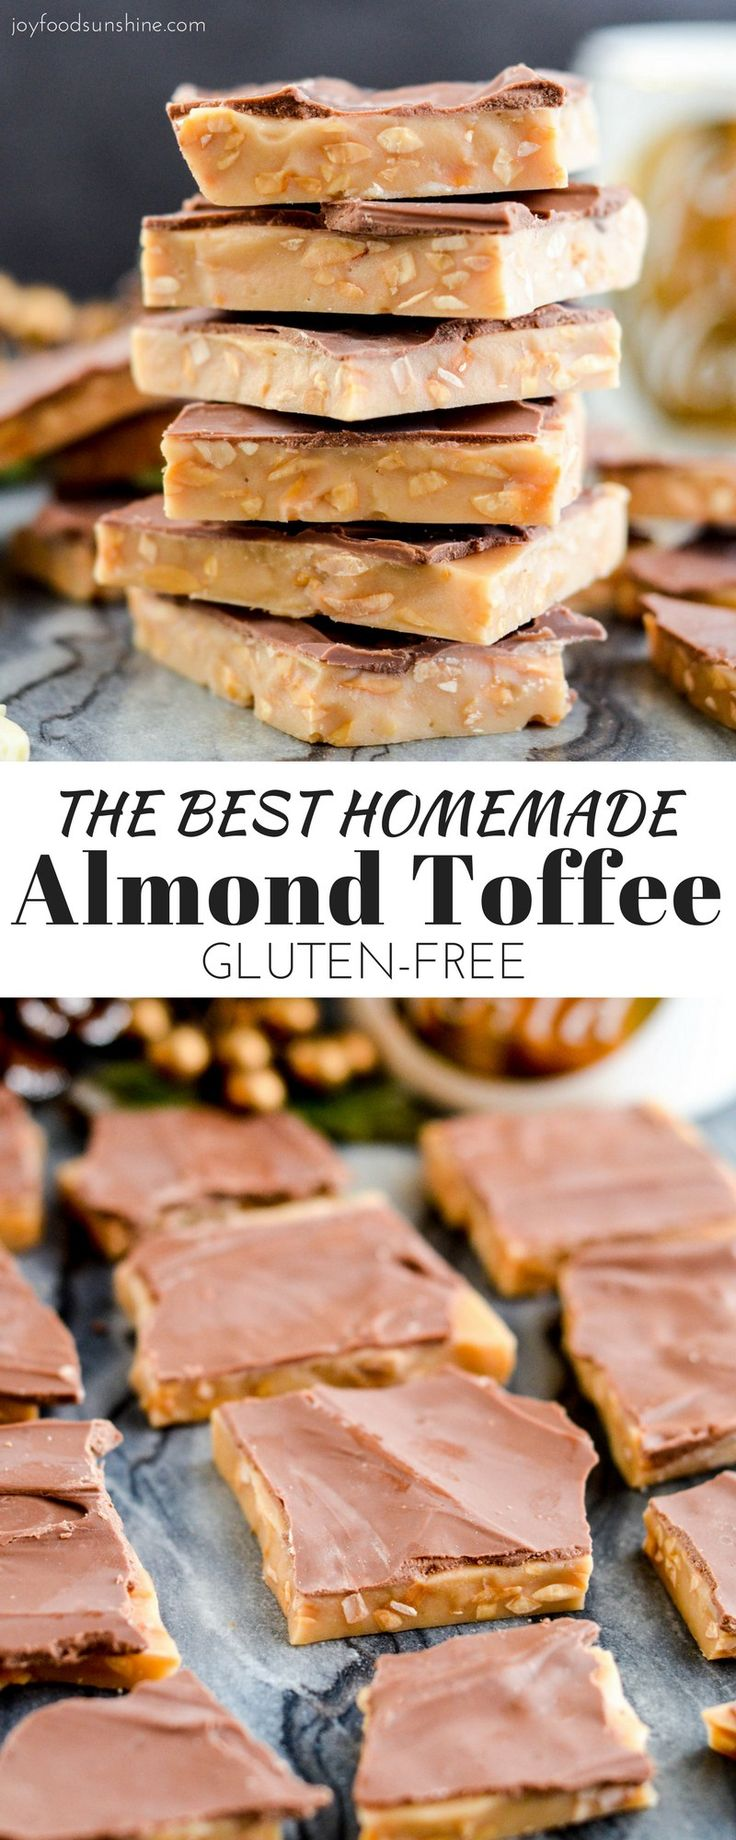 The best Homemade Almond Toffee ever! You only need 8 ingredients to make this delicious holiday treat that is naturally gluten-free! Perfect to give as gifts to your neighbors and friends!